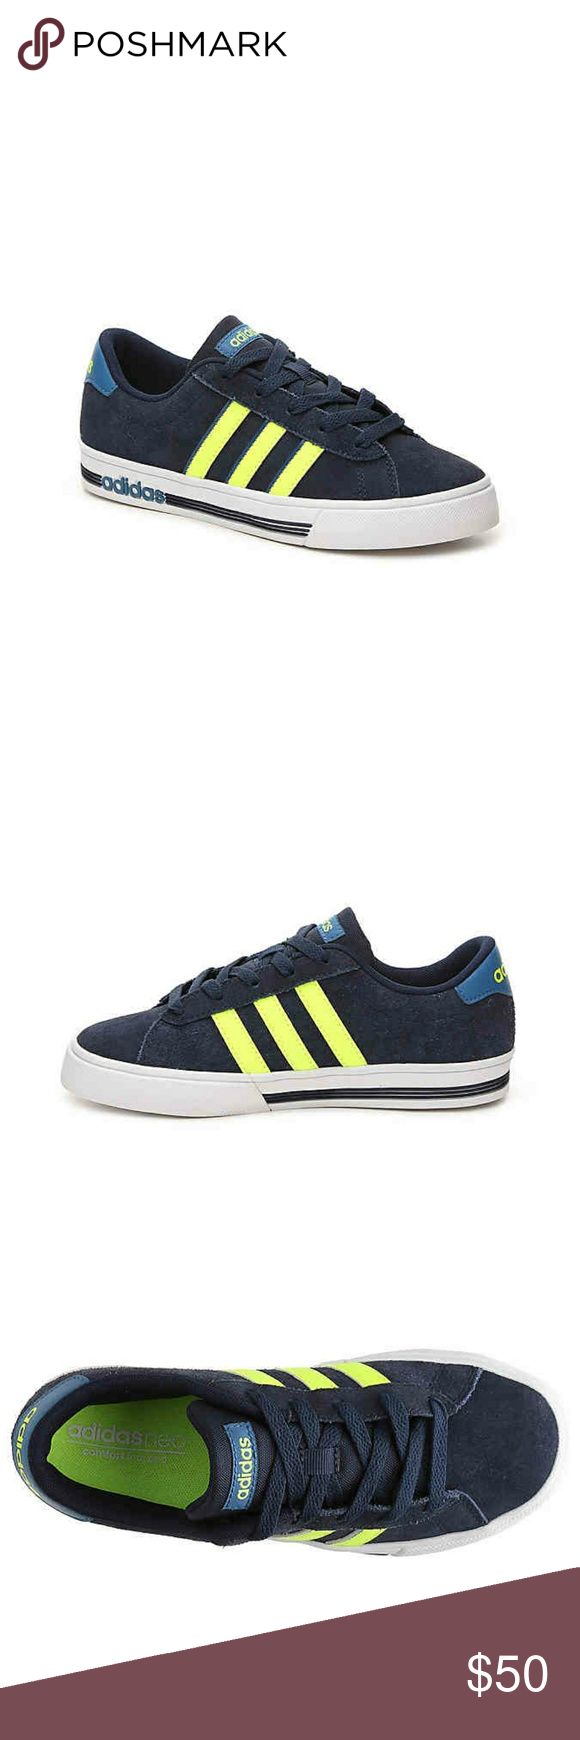 20f9bafeca5 Adidas Daily Team K Kids Shoes Your little one will earn style stripes by  throwing the